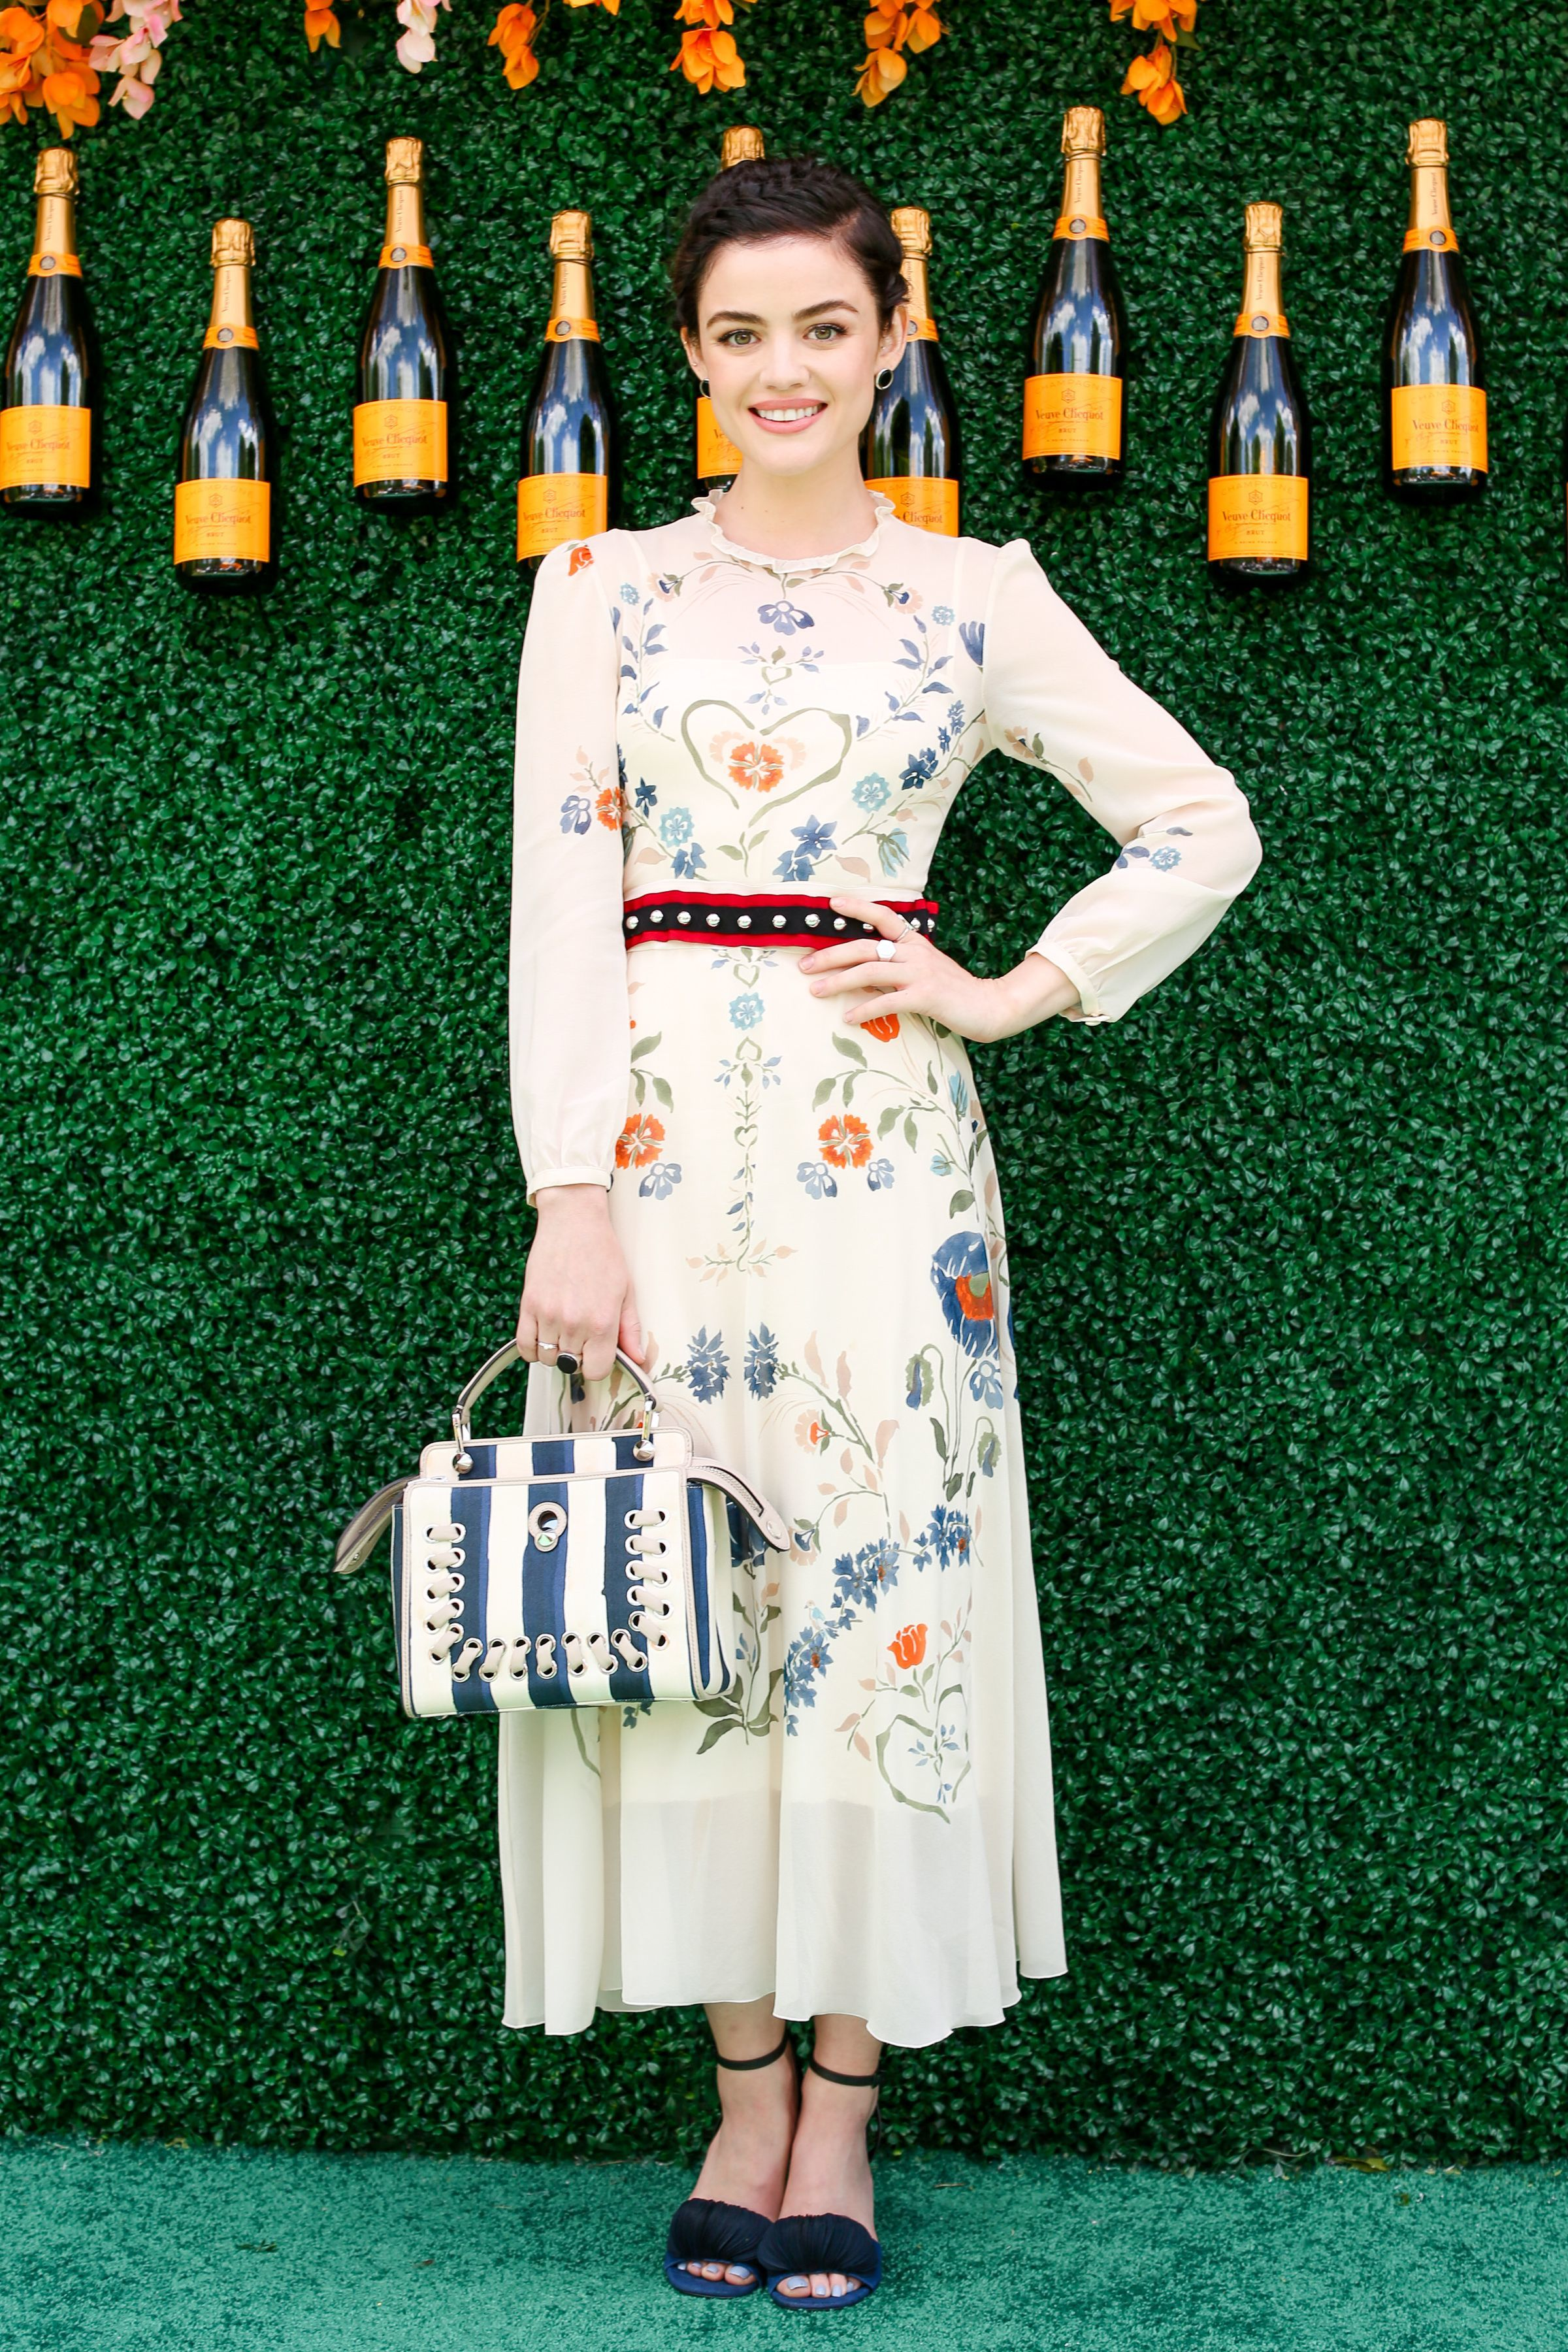 Lucy Hale attends the 10th anniversary of the Veuve Clicquot Polo Classic at Liberty State Park in Jersey City, New Jersey, on June 3, 2017.